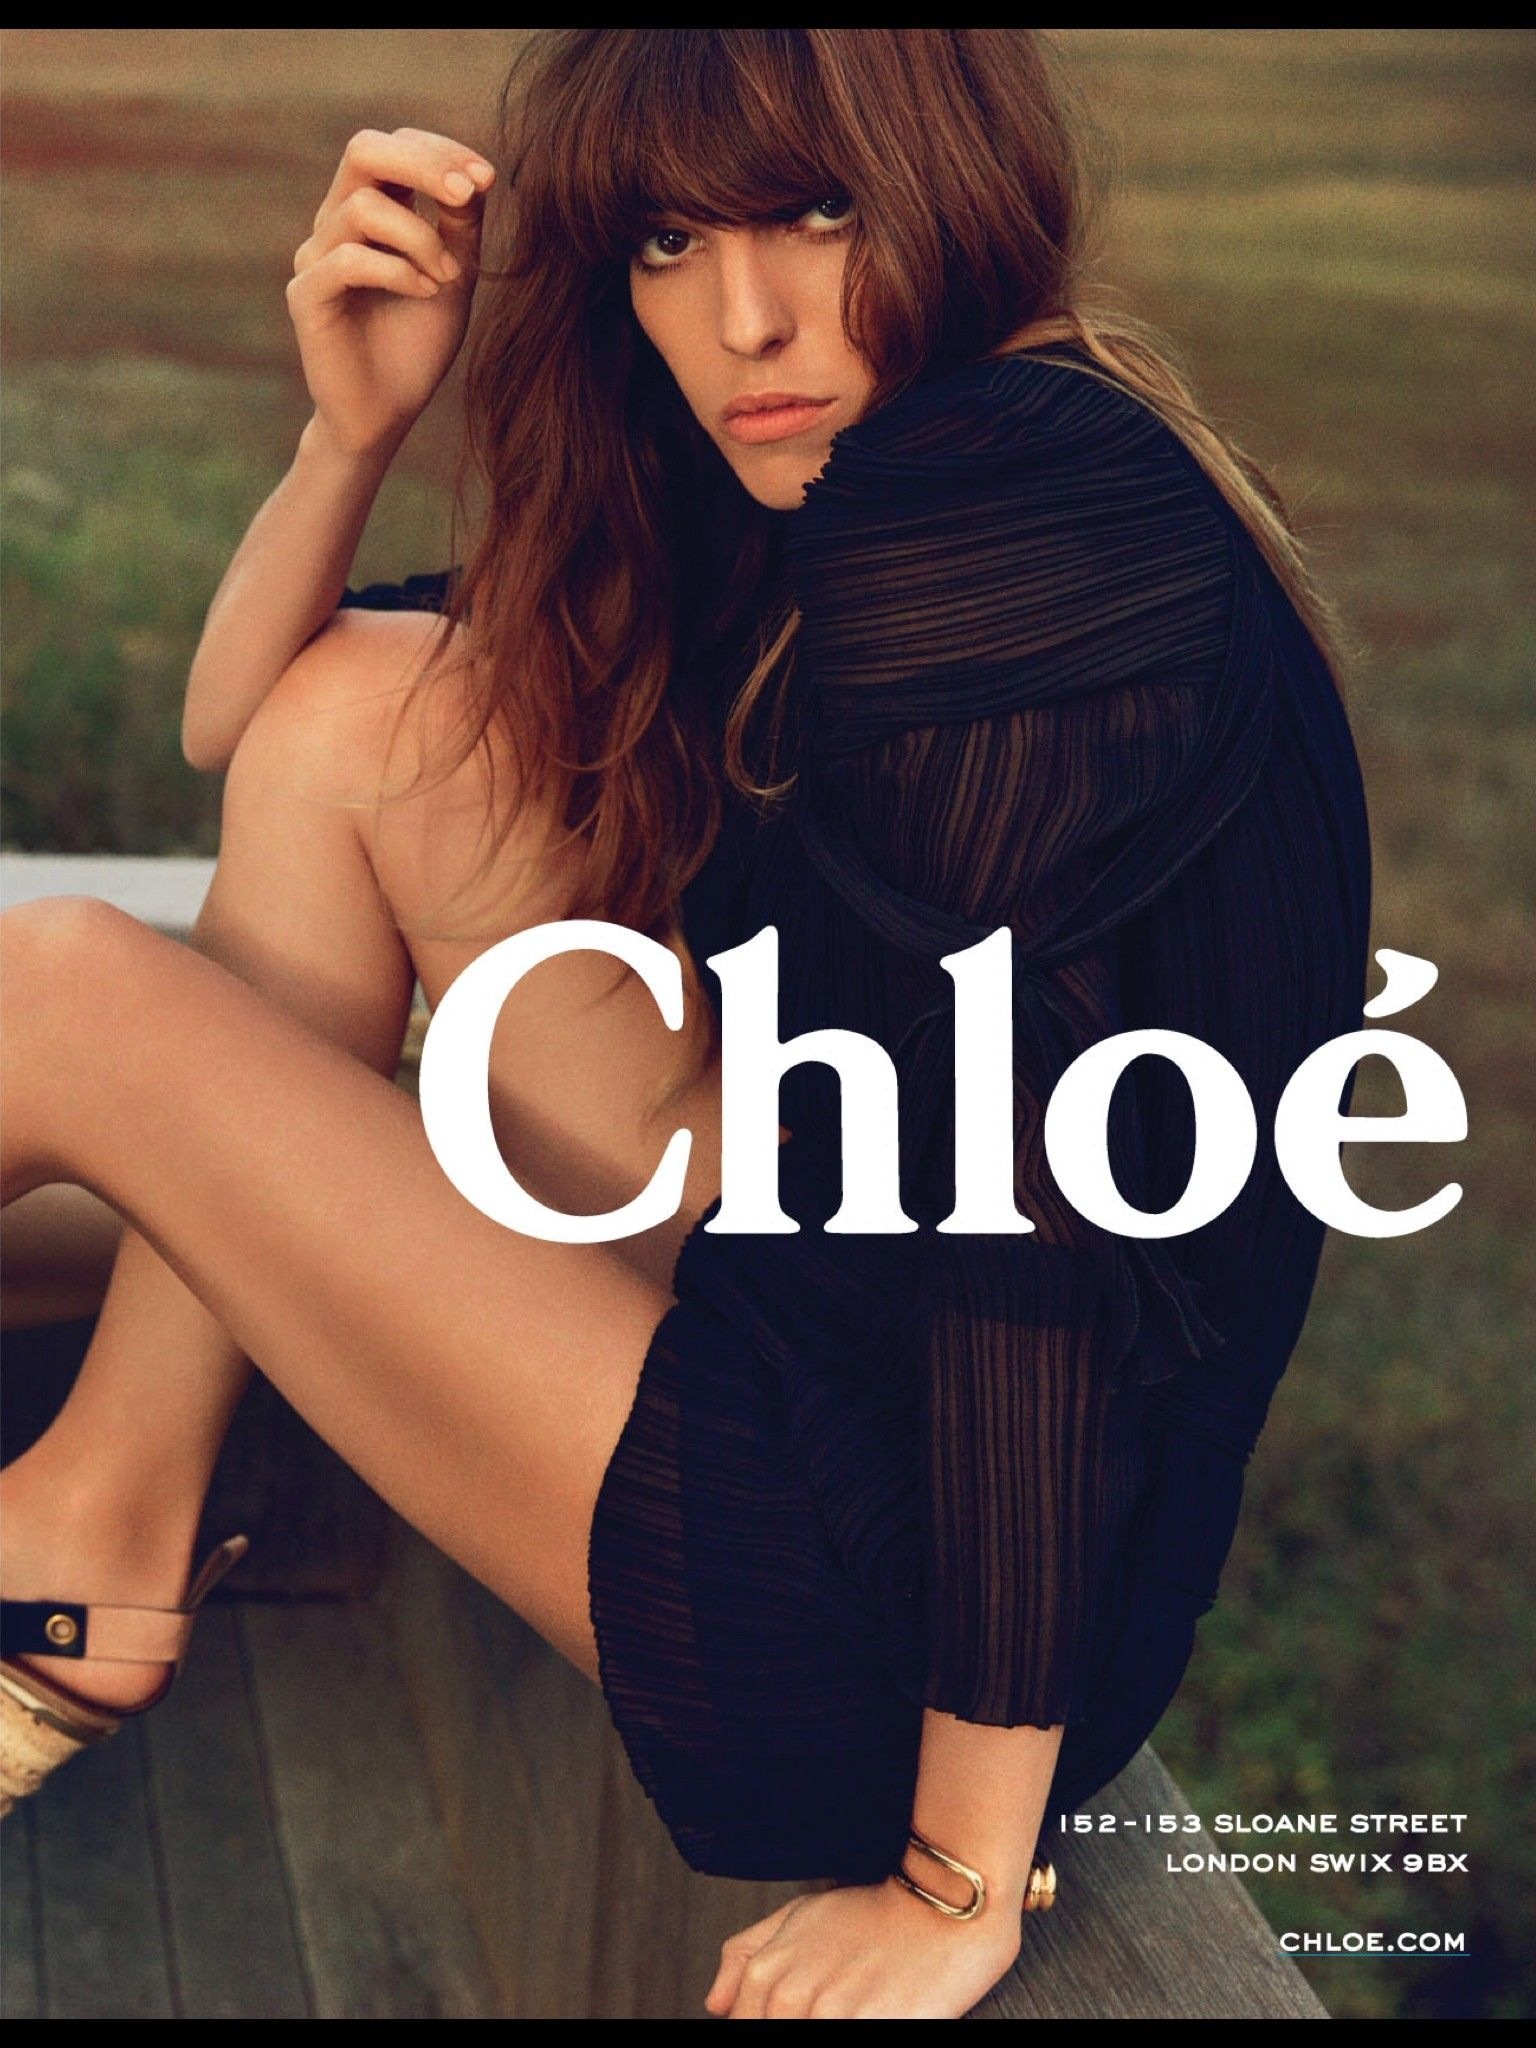 Forum on this topic: Chloé SpringSummer 2014 Campaign, chlo-springsummer-2014-campaign/